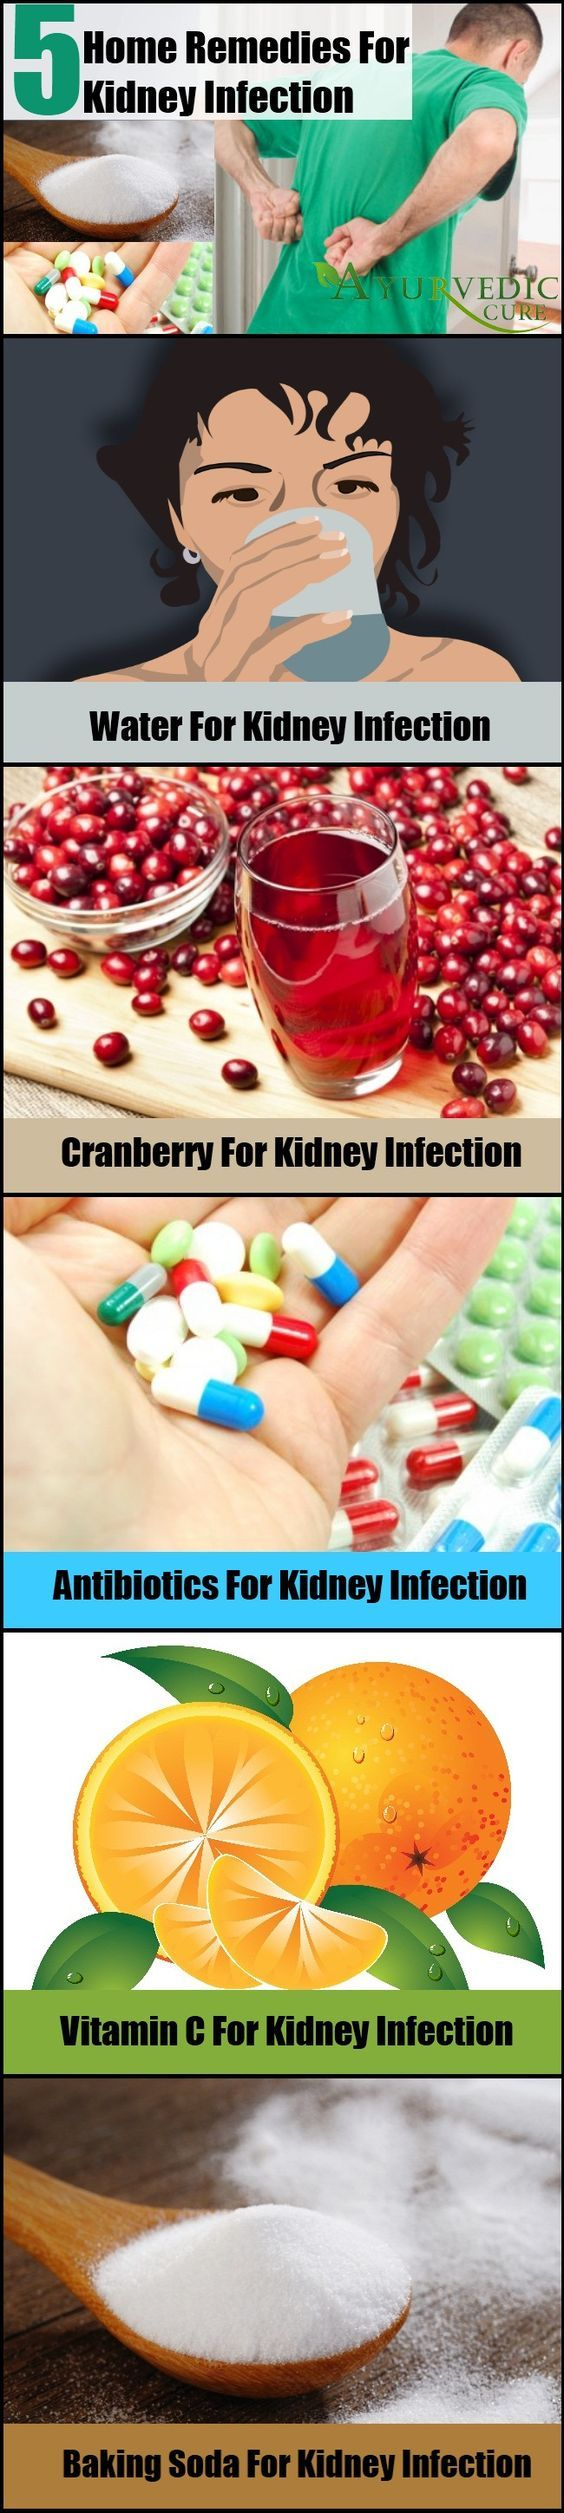 Top 5 Home Remedies For Kidney Infection--Yeah thanks a lot for perpetuating the idea that poor hygiene practices bring on kidney infection.